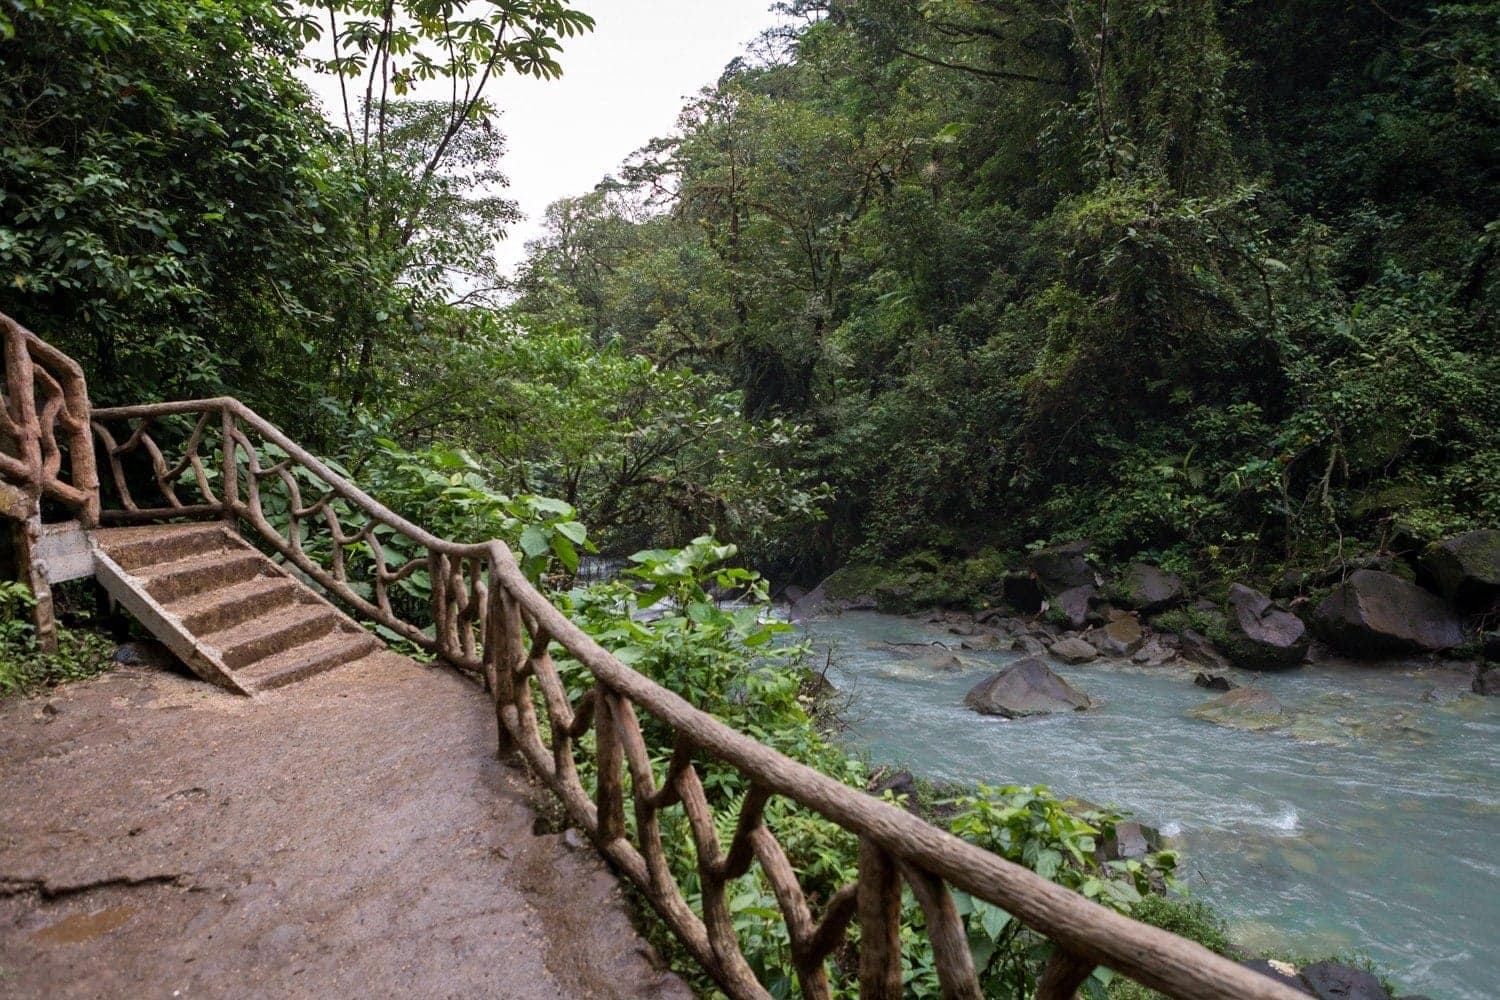 View of Rio Celeste Waterfall's river flowing with blue water.